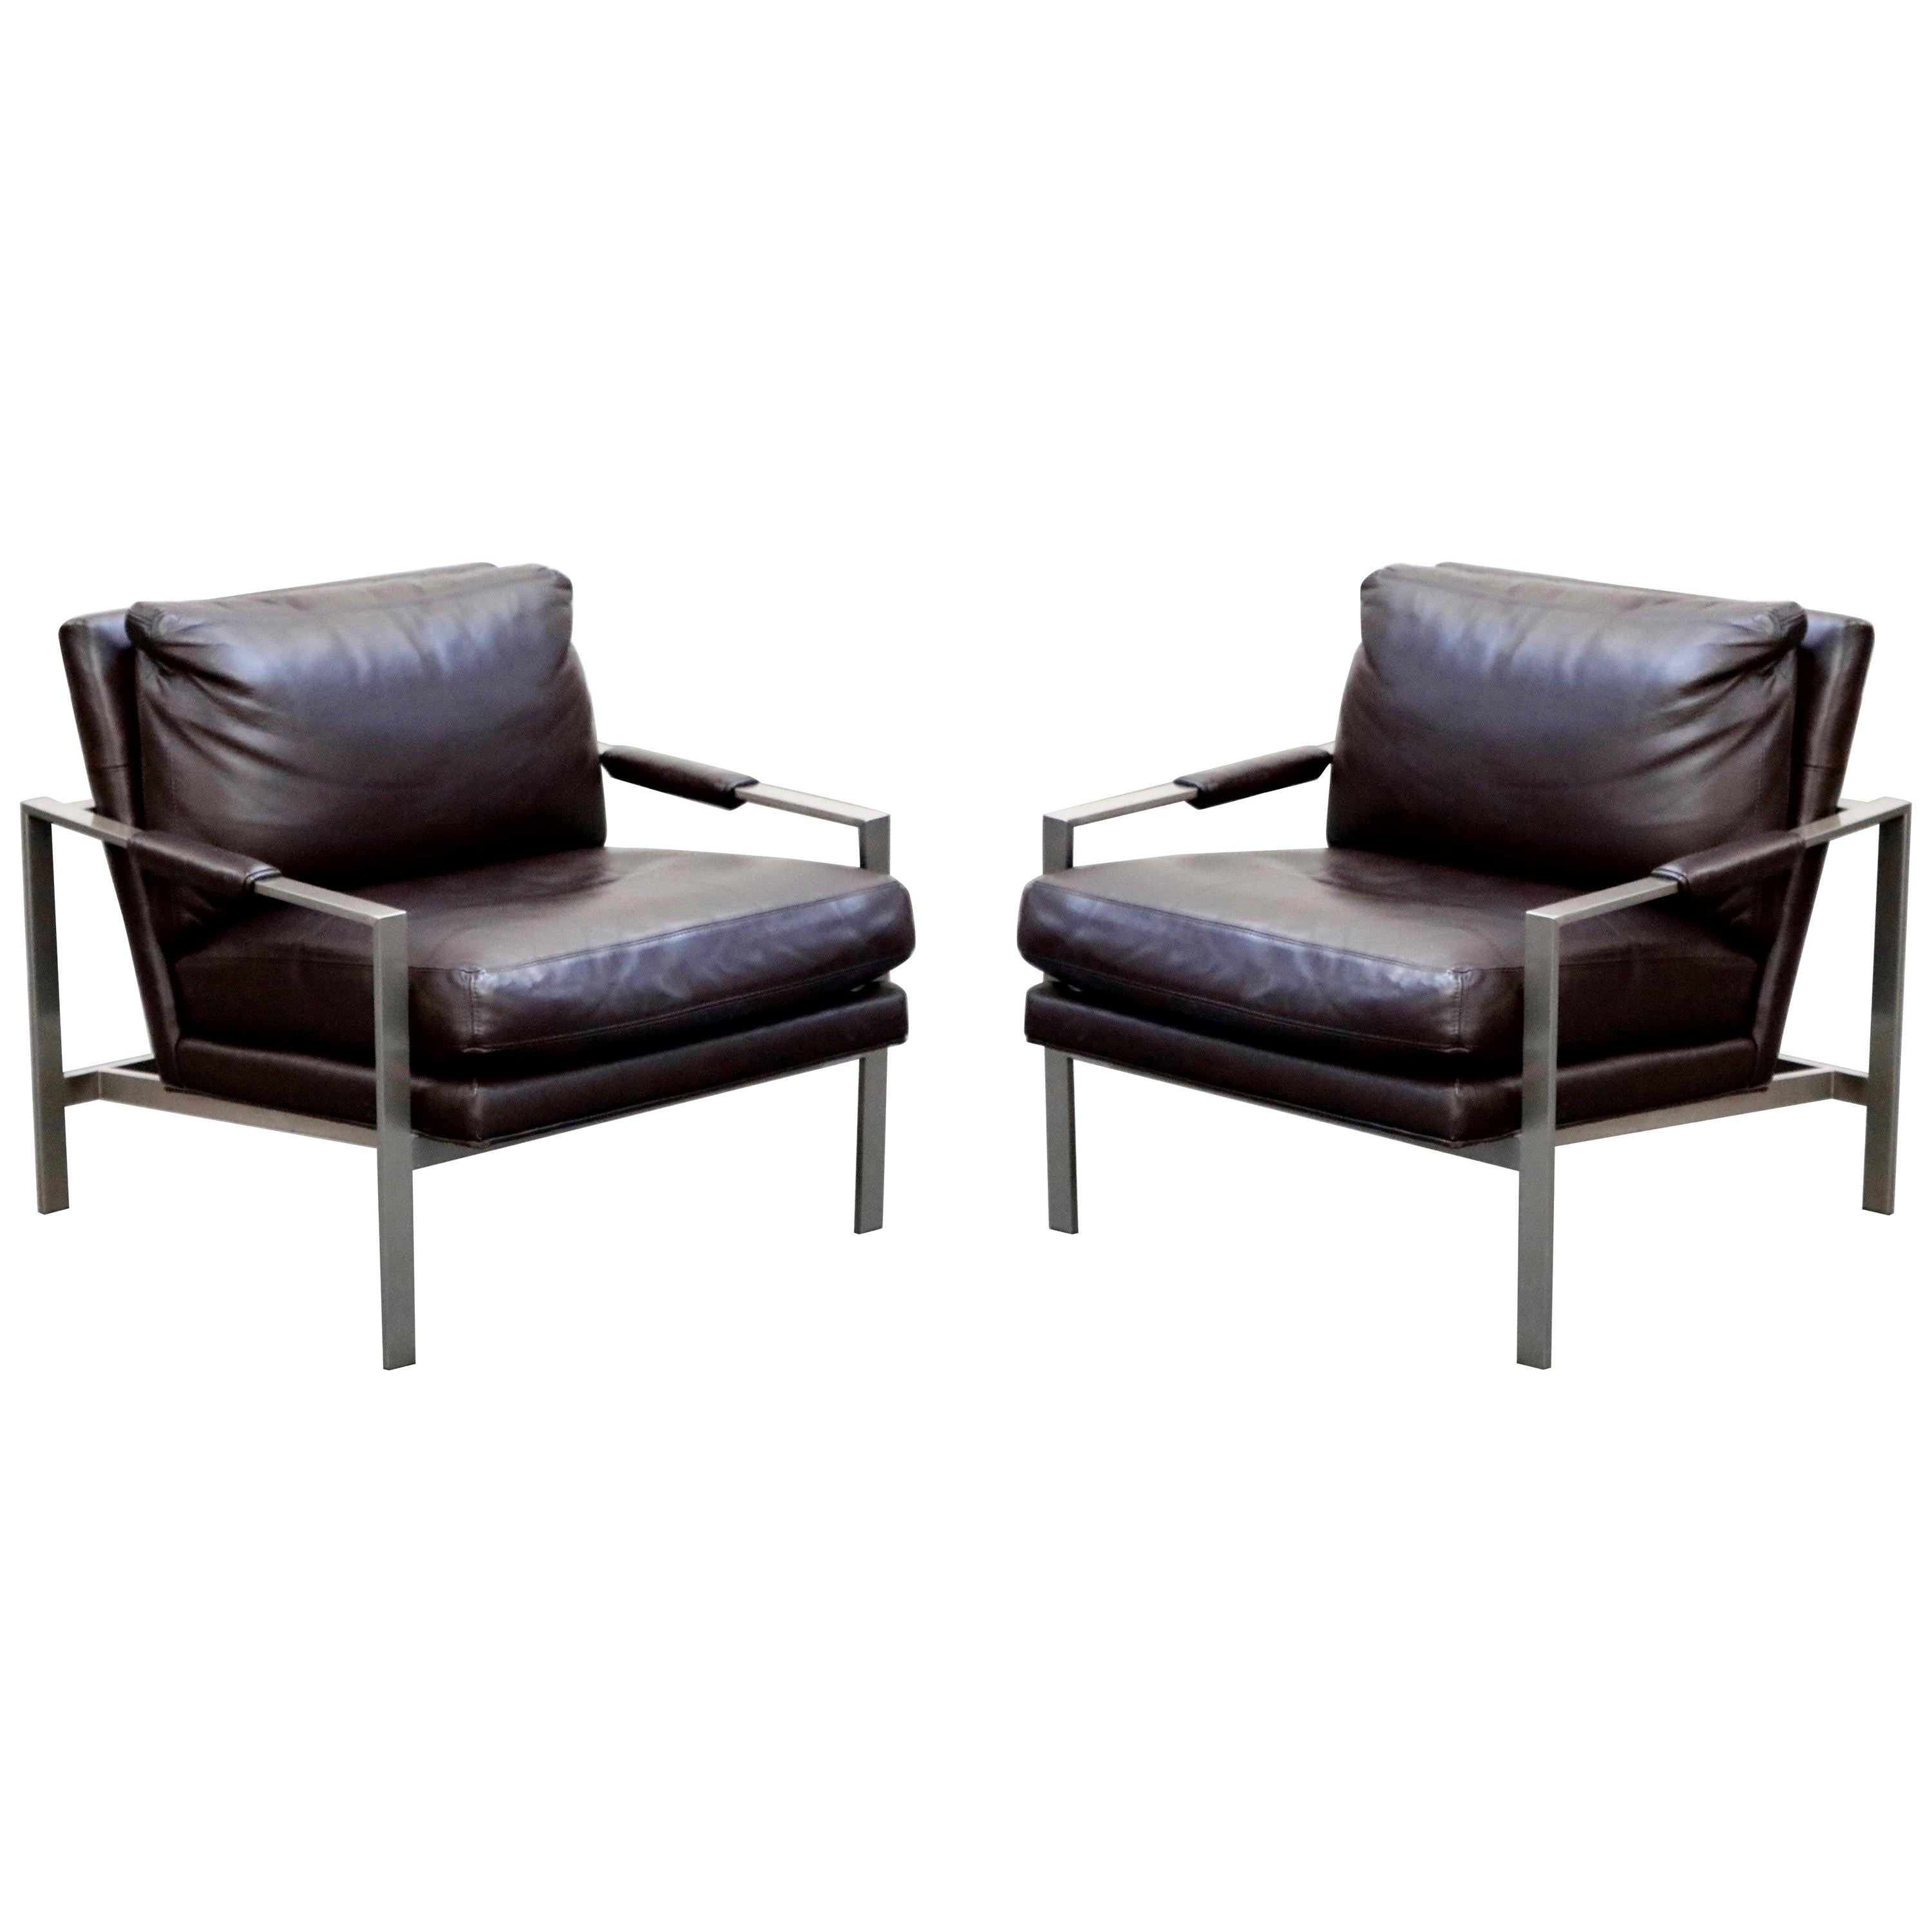 Pair of Leather Lounge Armchairs by Milo Baughman for Thayer Coggin, Signed